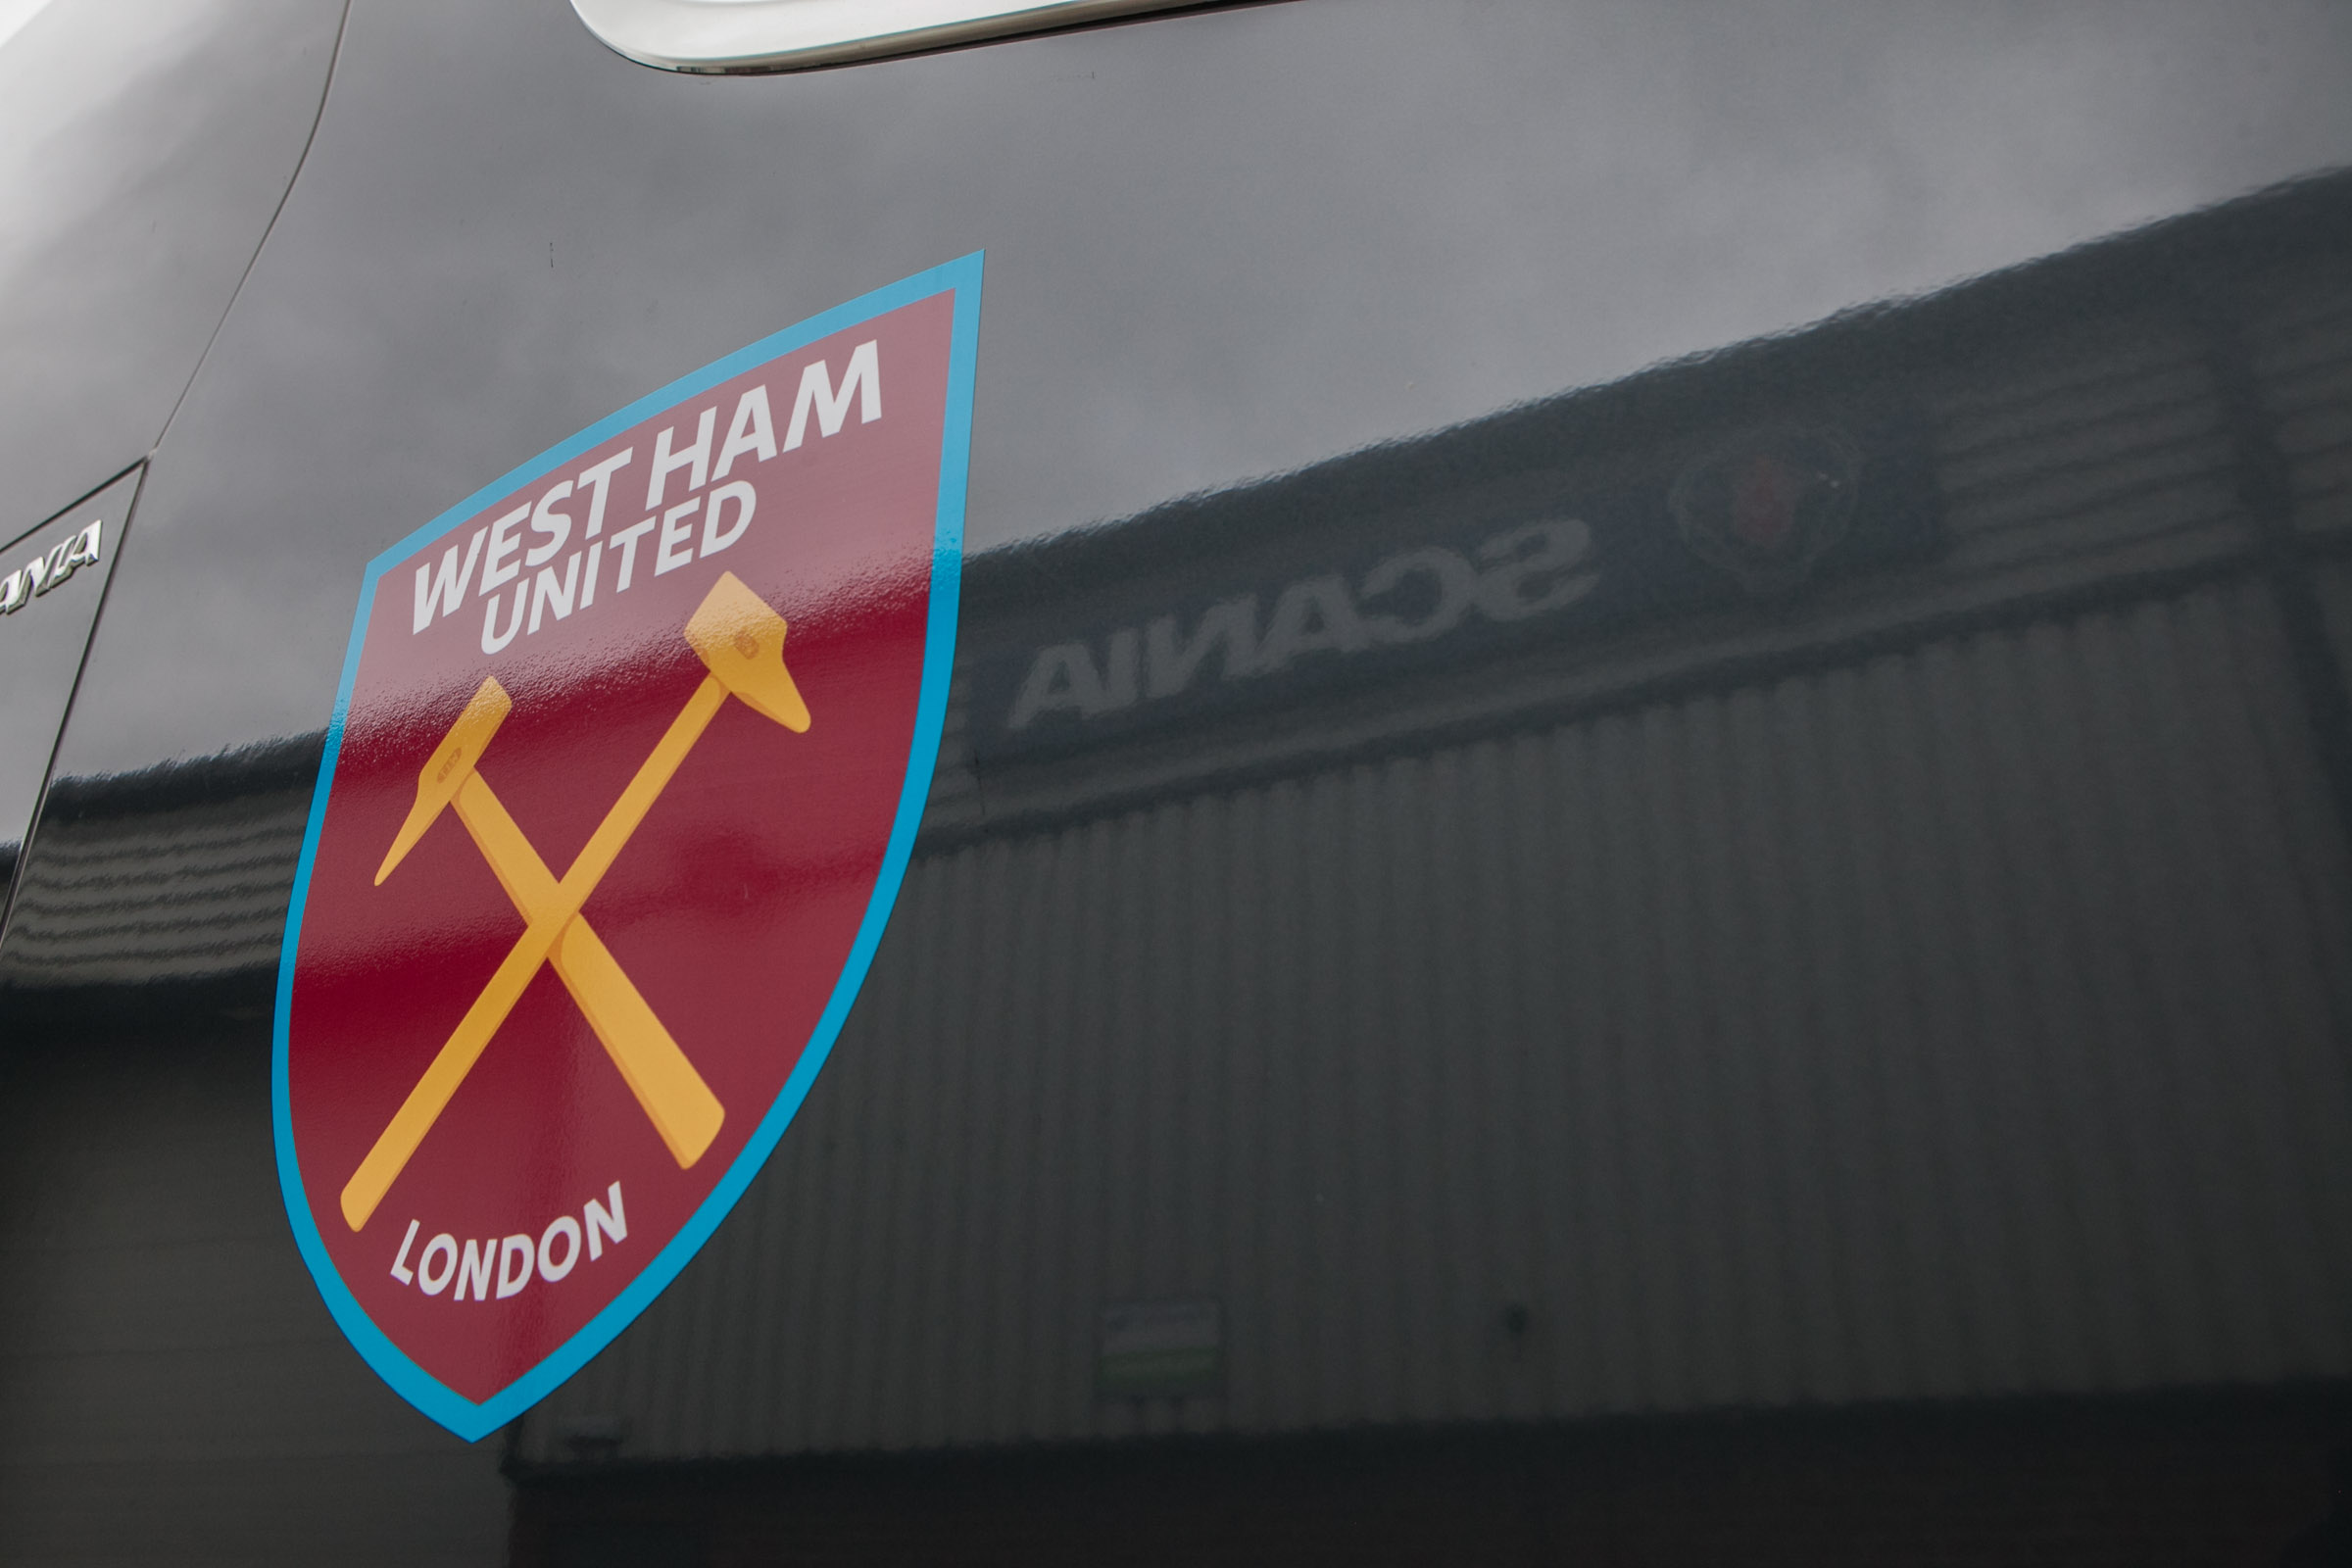 An image showing the West Ham United Football club's logo.